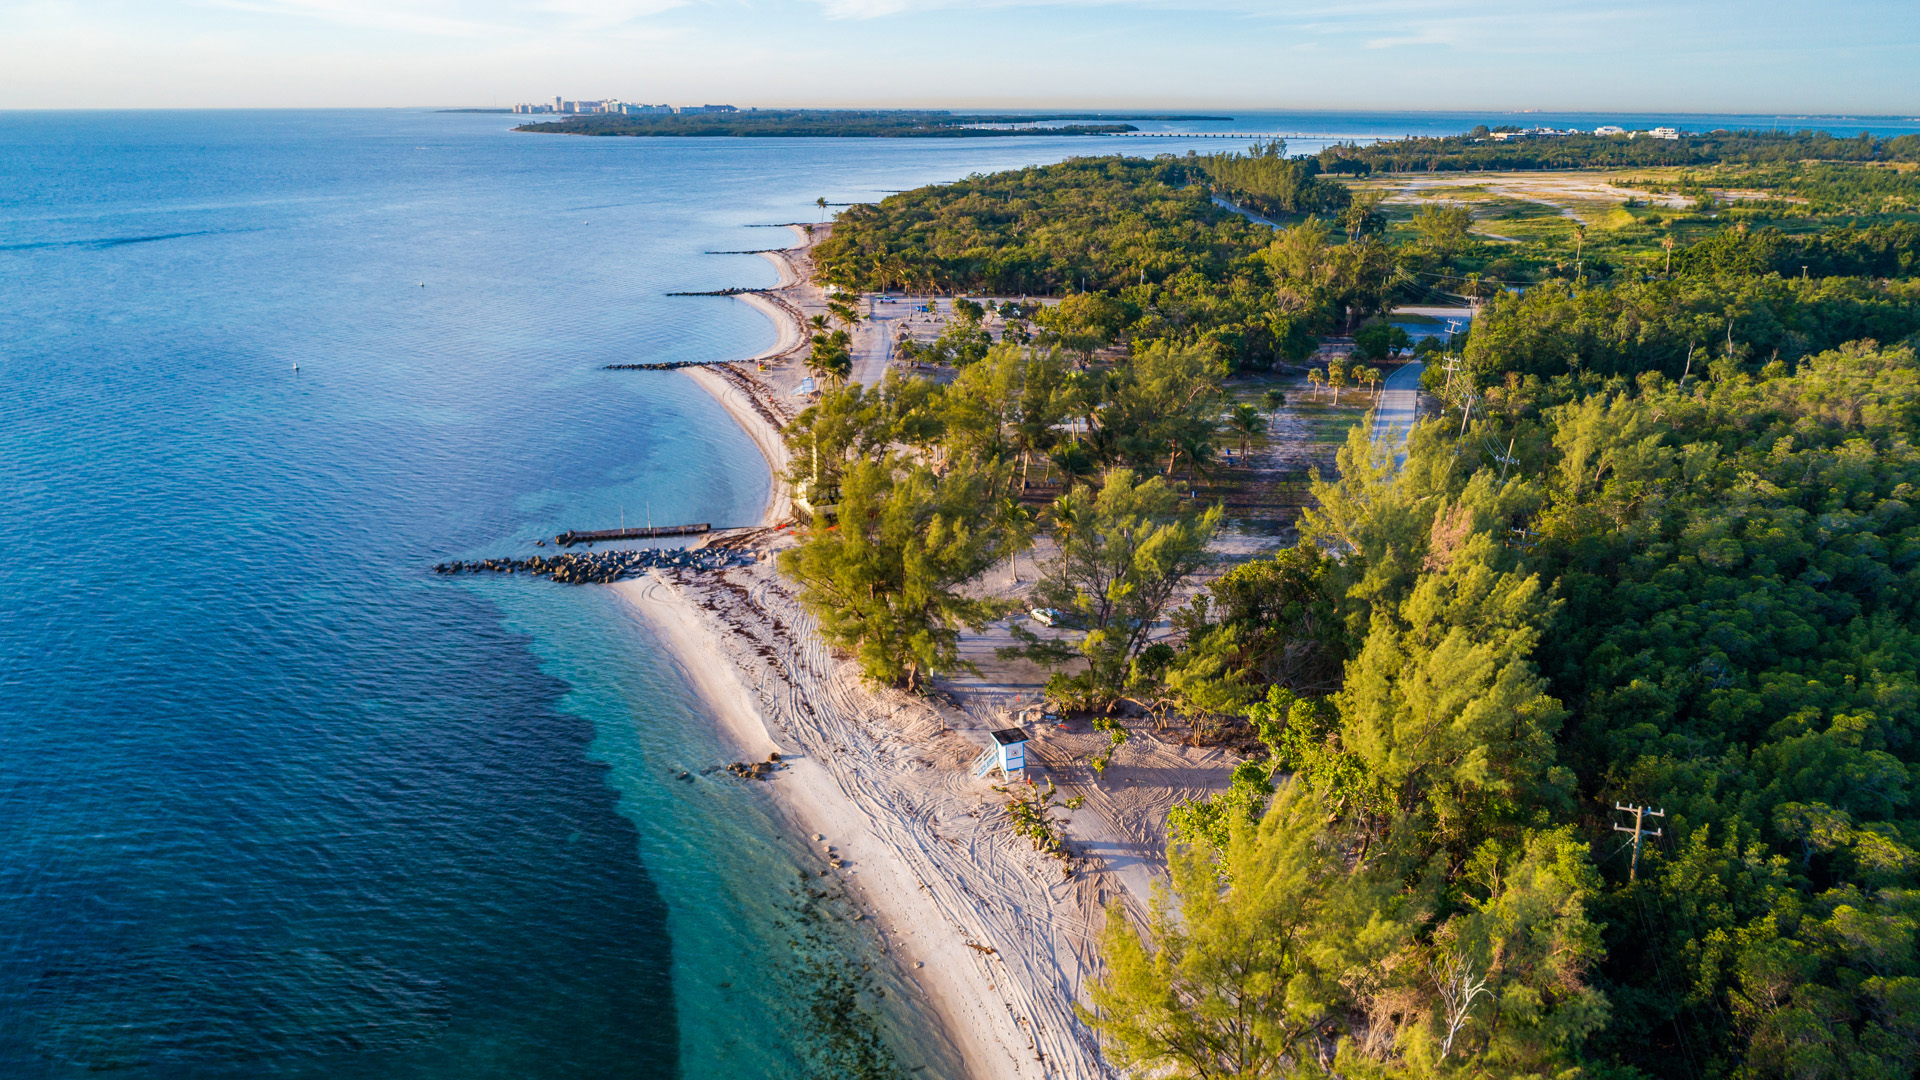 Virginia Key is the crown jewel of Miami's parks. Defend it. Stop Ultra! -